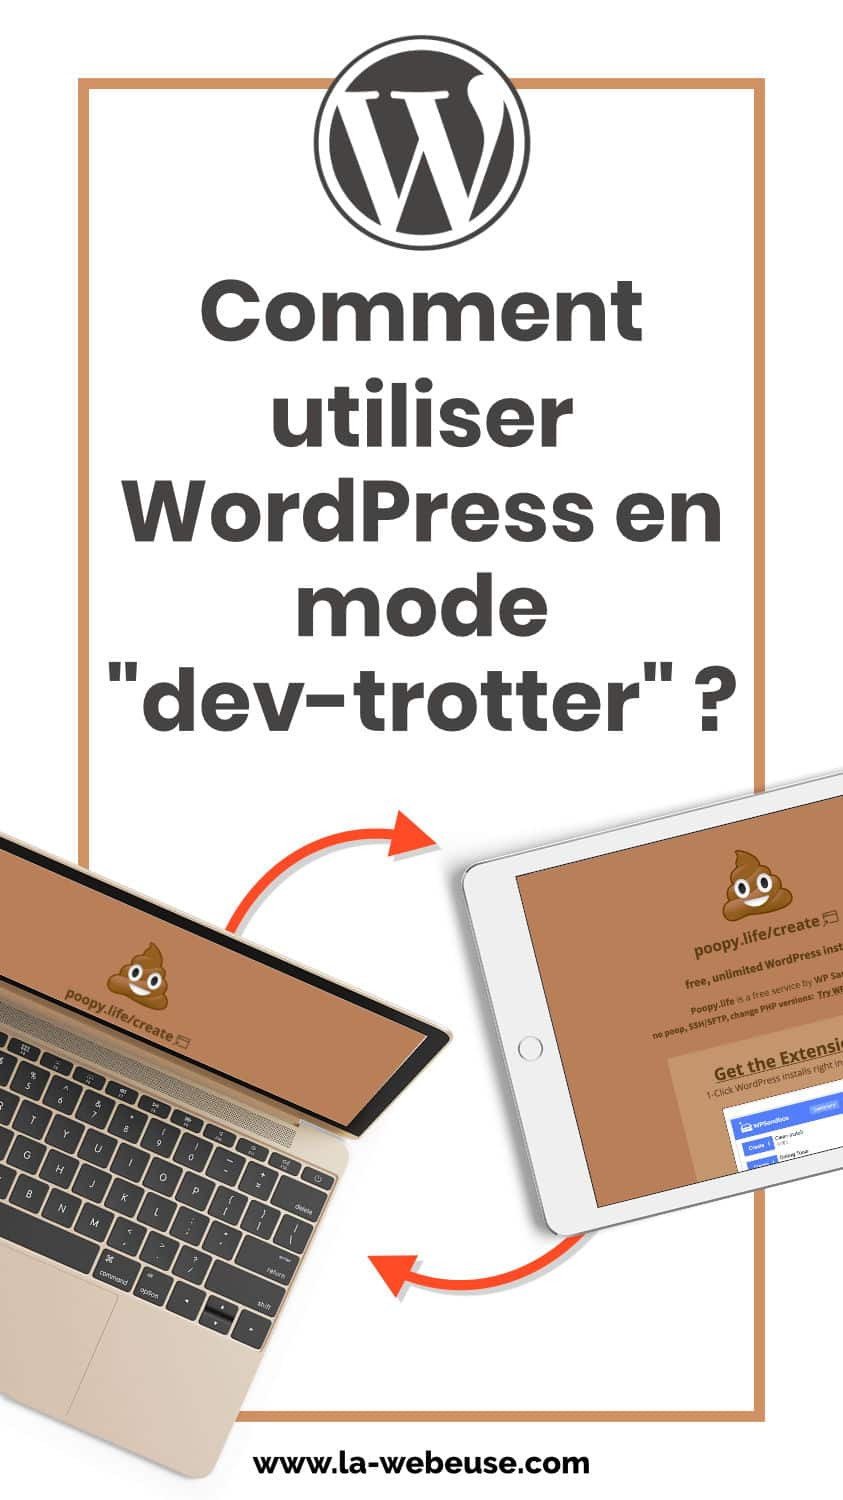 Développer son site WordPress n'importe où